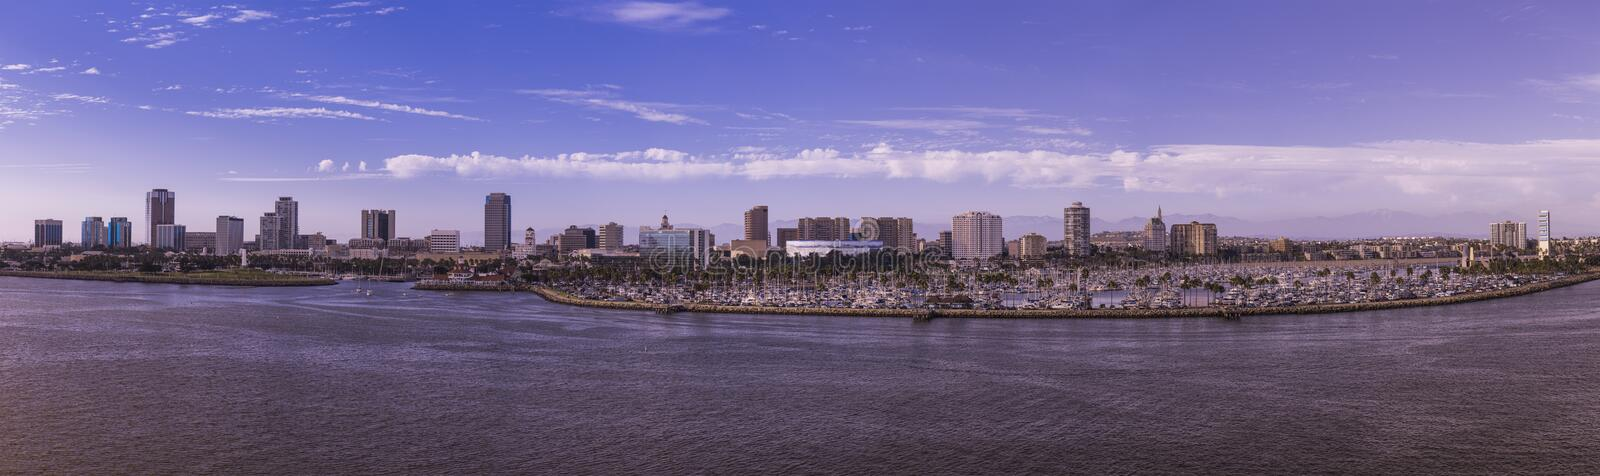 Long Beach CA. Downtown Long Beach waterfront in the afternoon stock photography